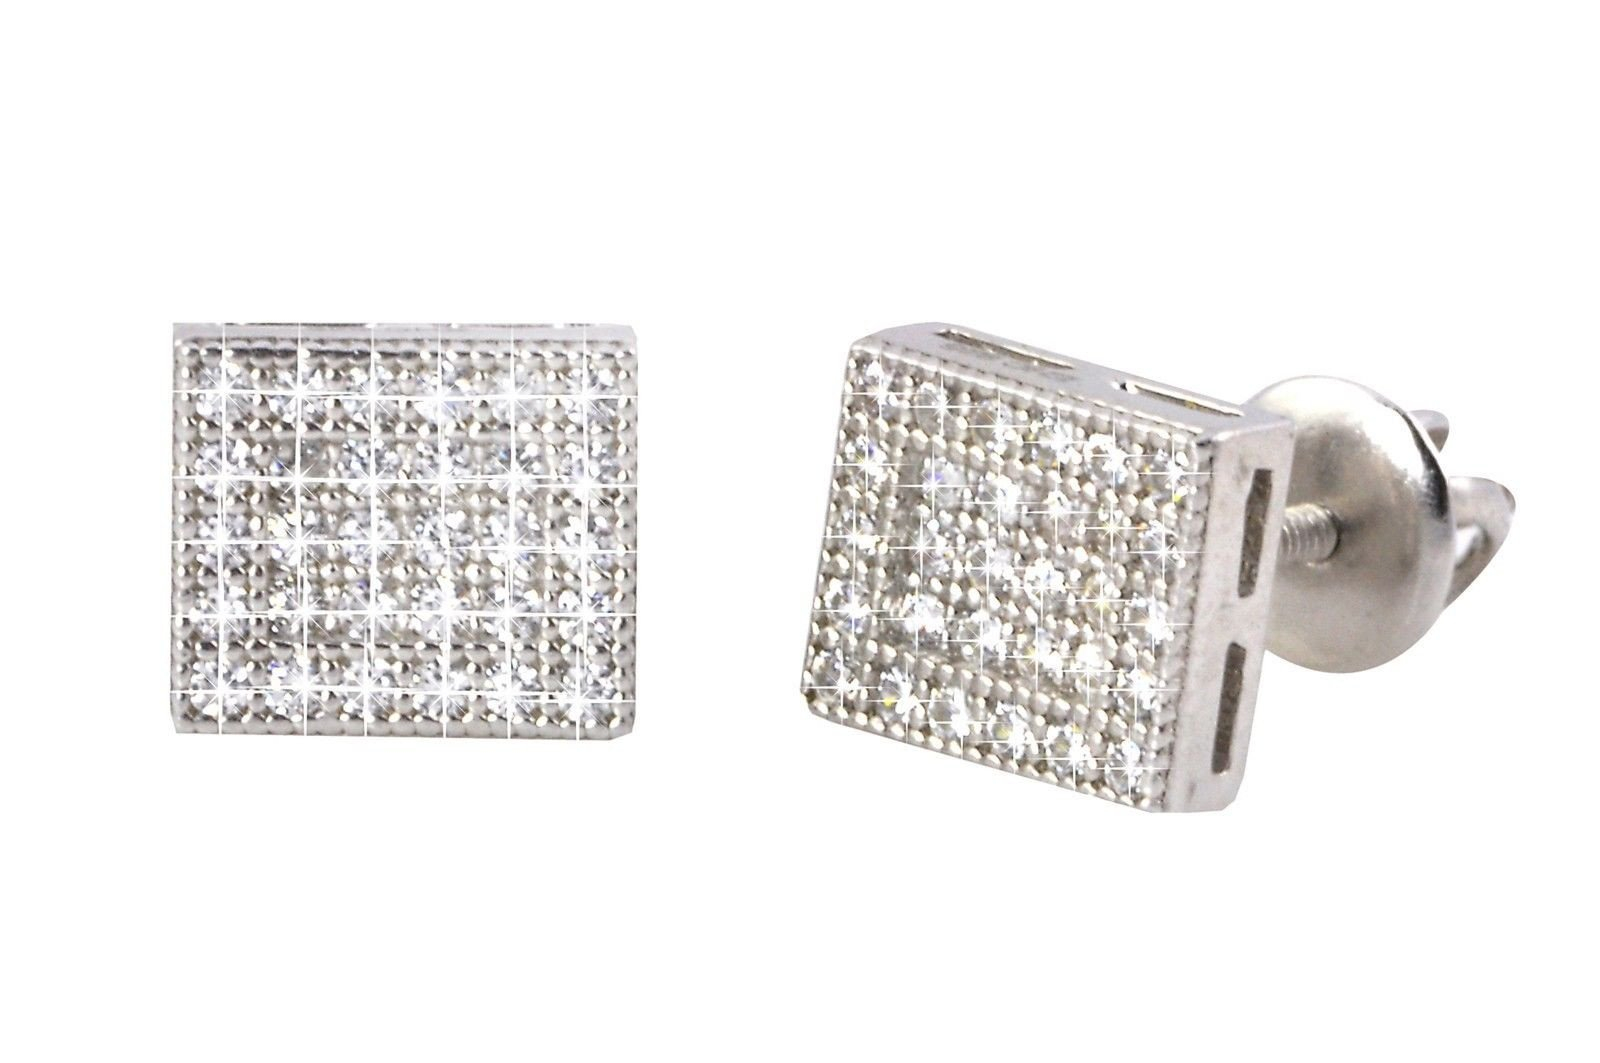 Image of Rectangle Earrings Mens Womens Studs Sterling Silver Screwback Clear CZ 6mmx8mm